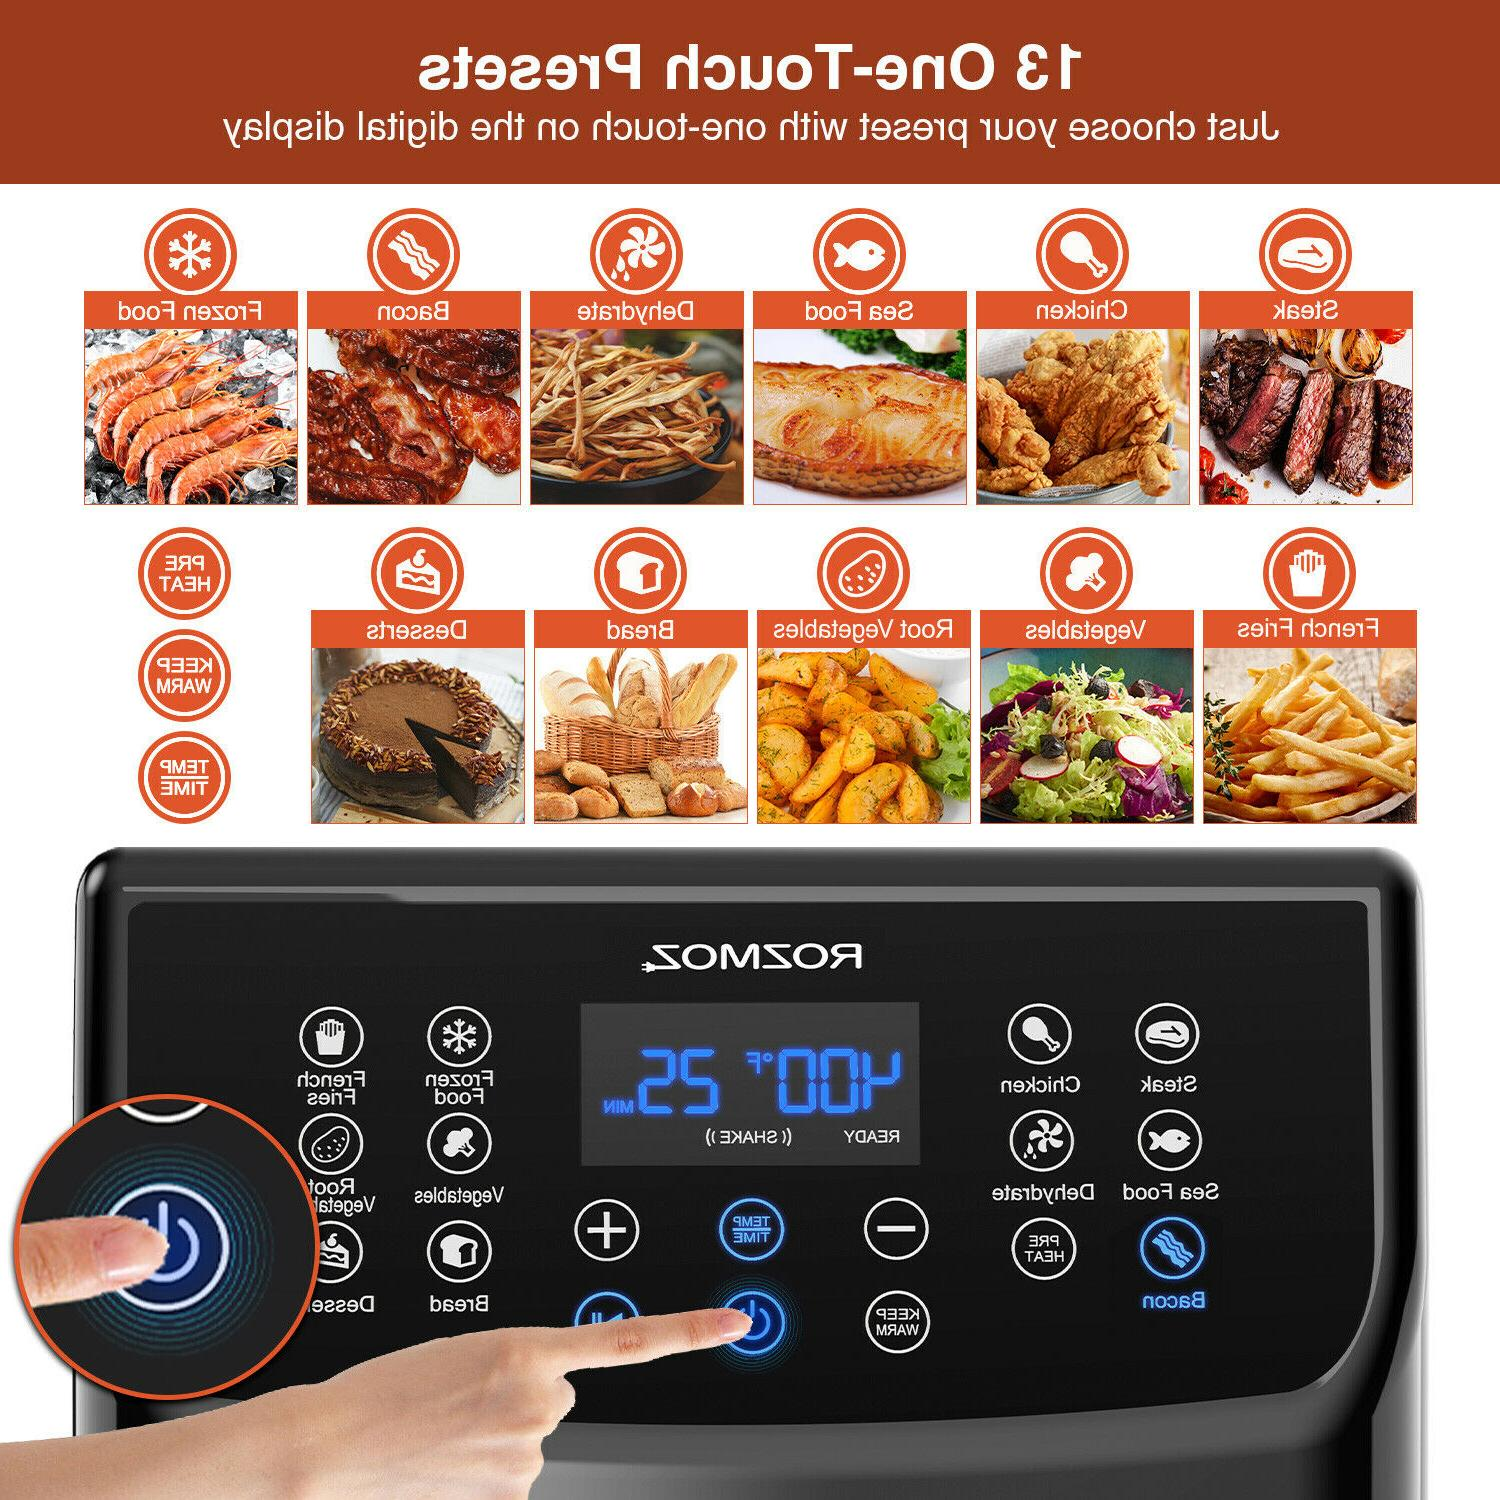 Rozmoz 5.8 1700W Recipe Work Genuine LED Digital Touchscreen